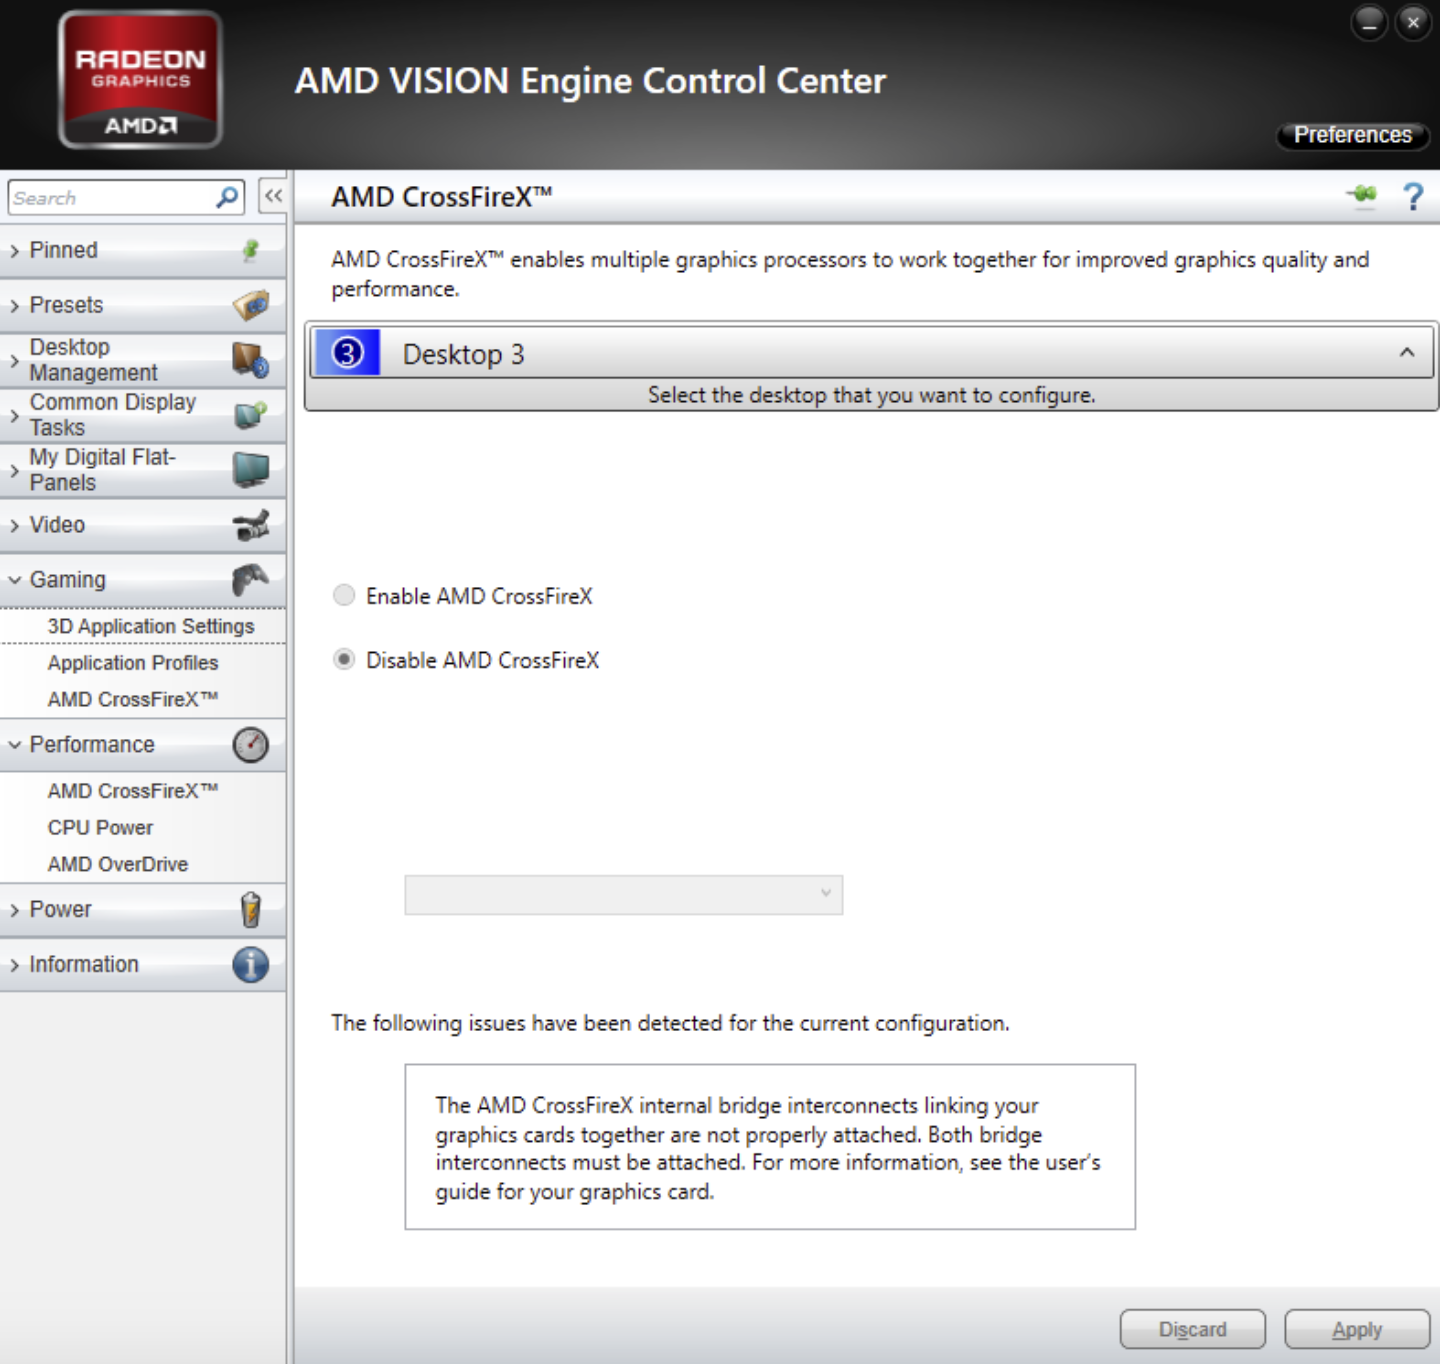 Disable AMD CrossFireX